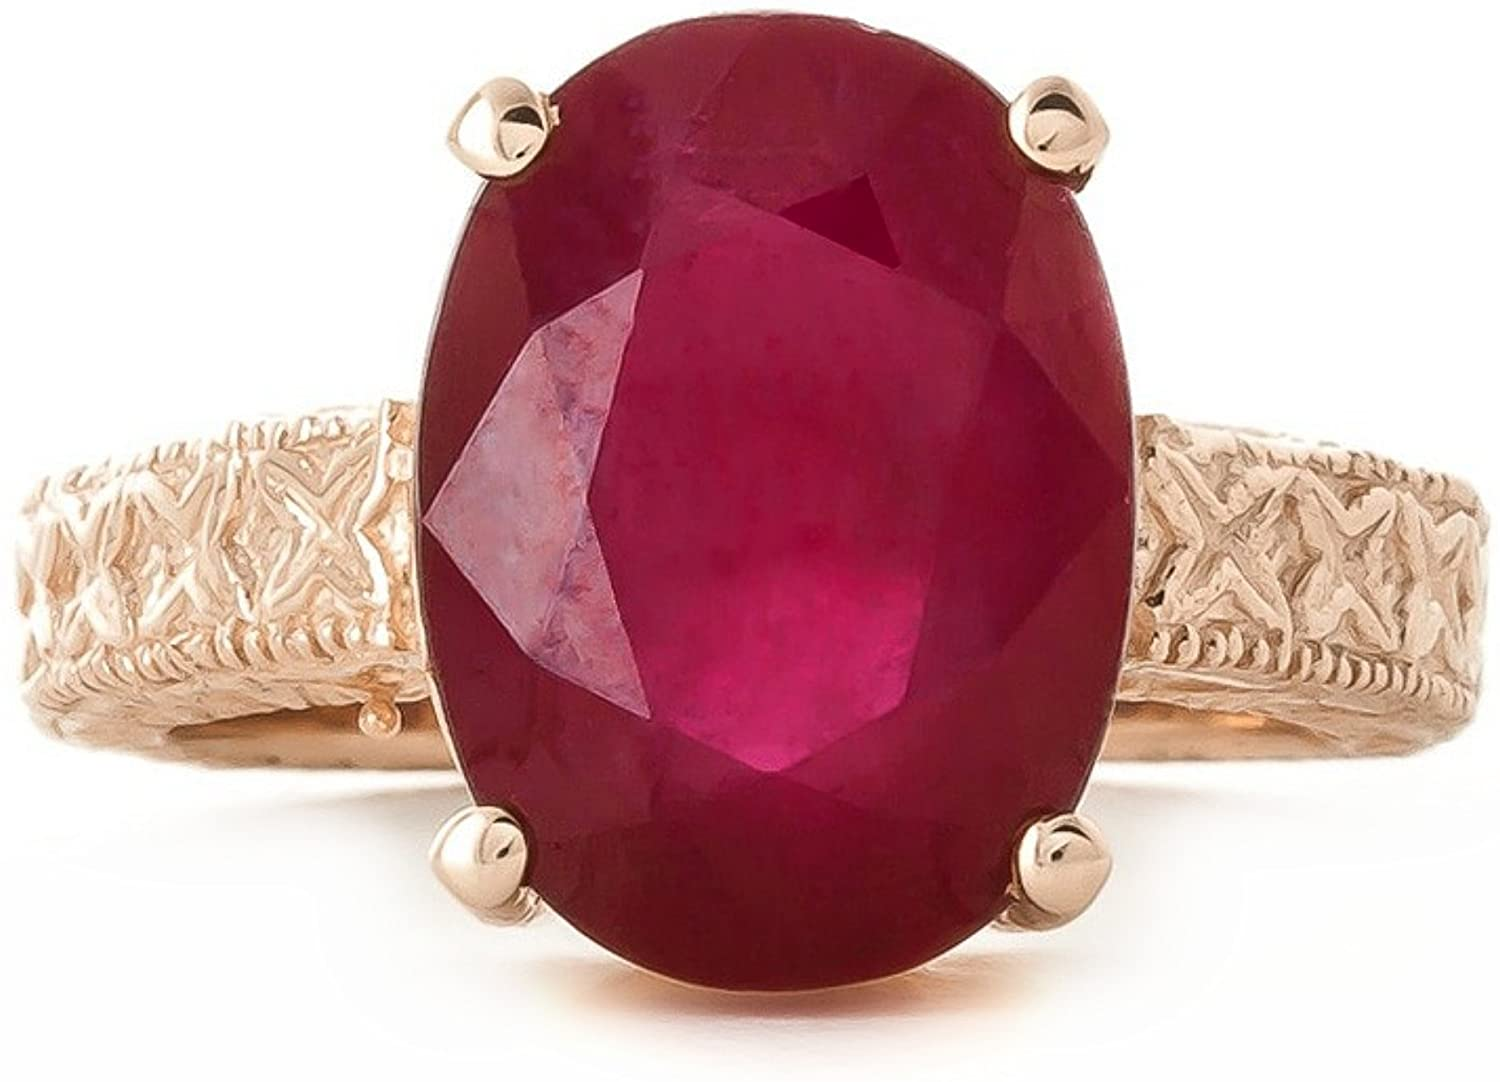 Galaxy Gold 14k Solid Gold Filigree Ring Oval Shape Ruby 5277 (Rose-Gold, 8)